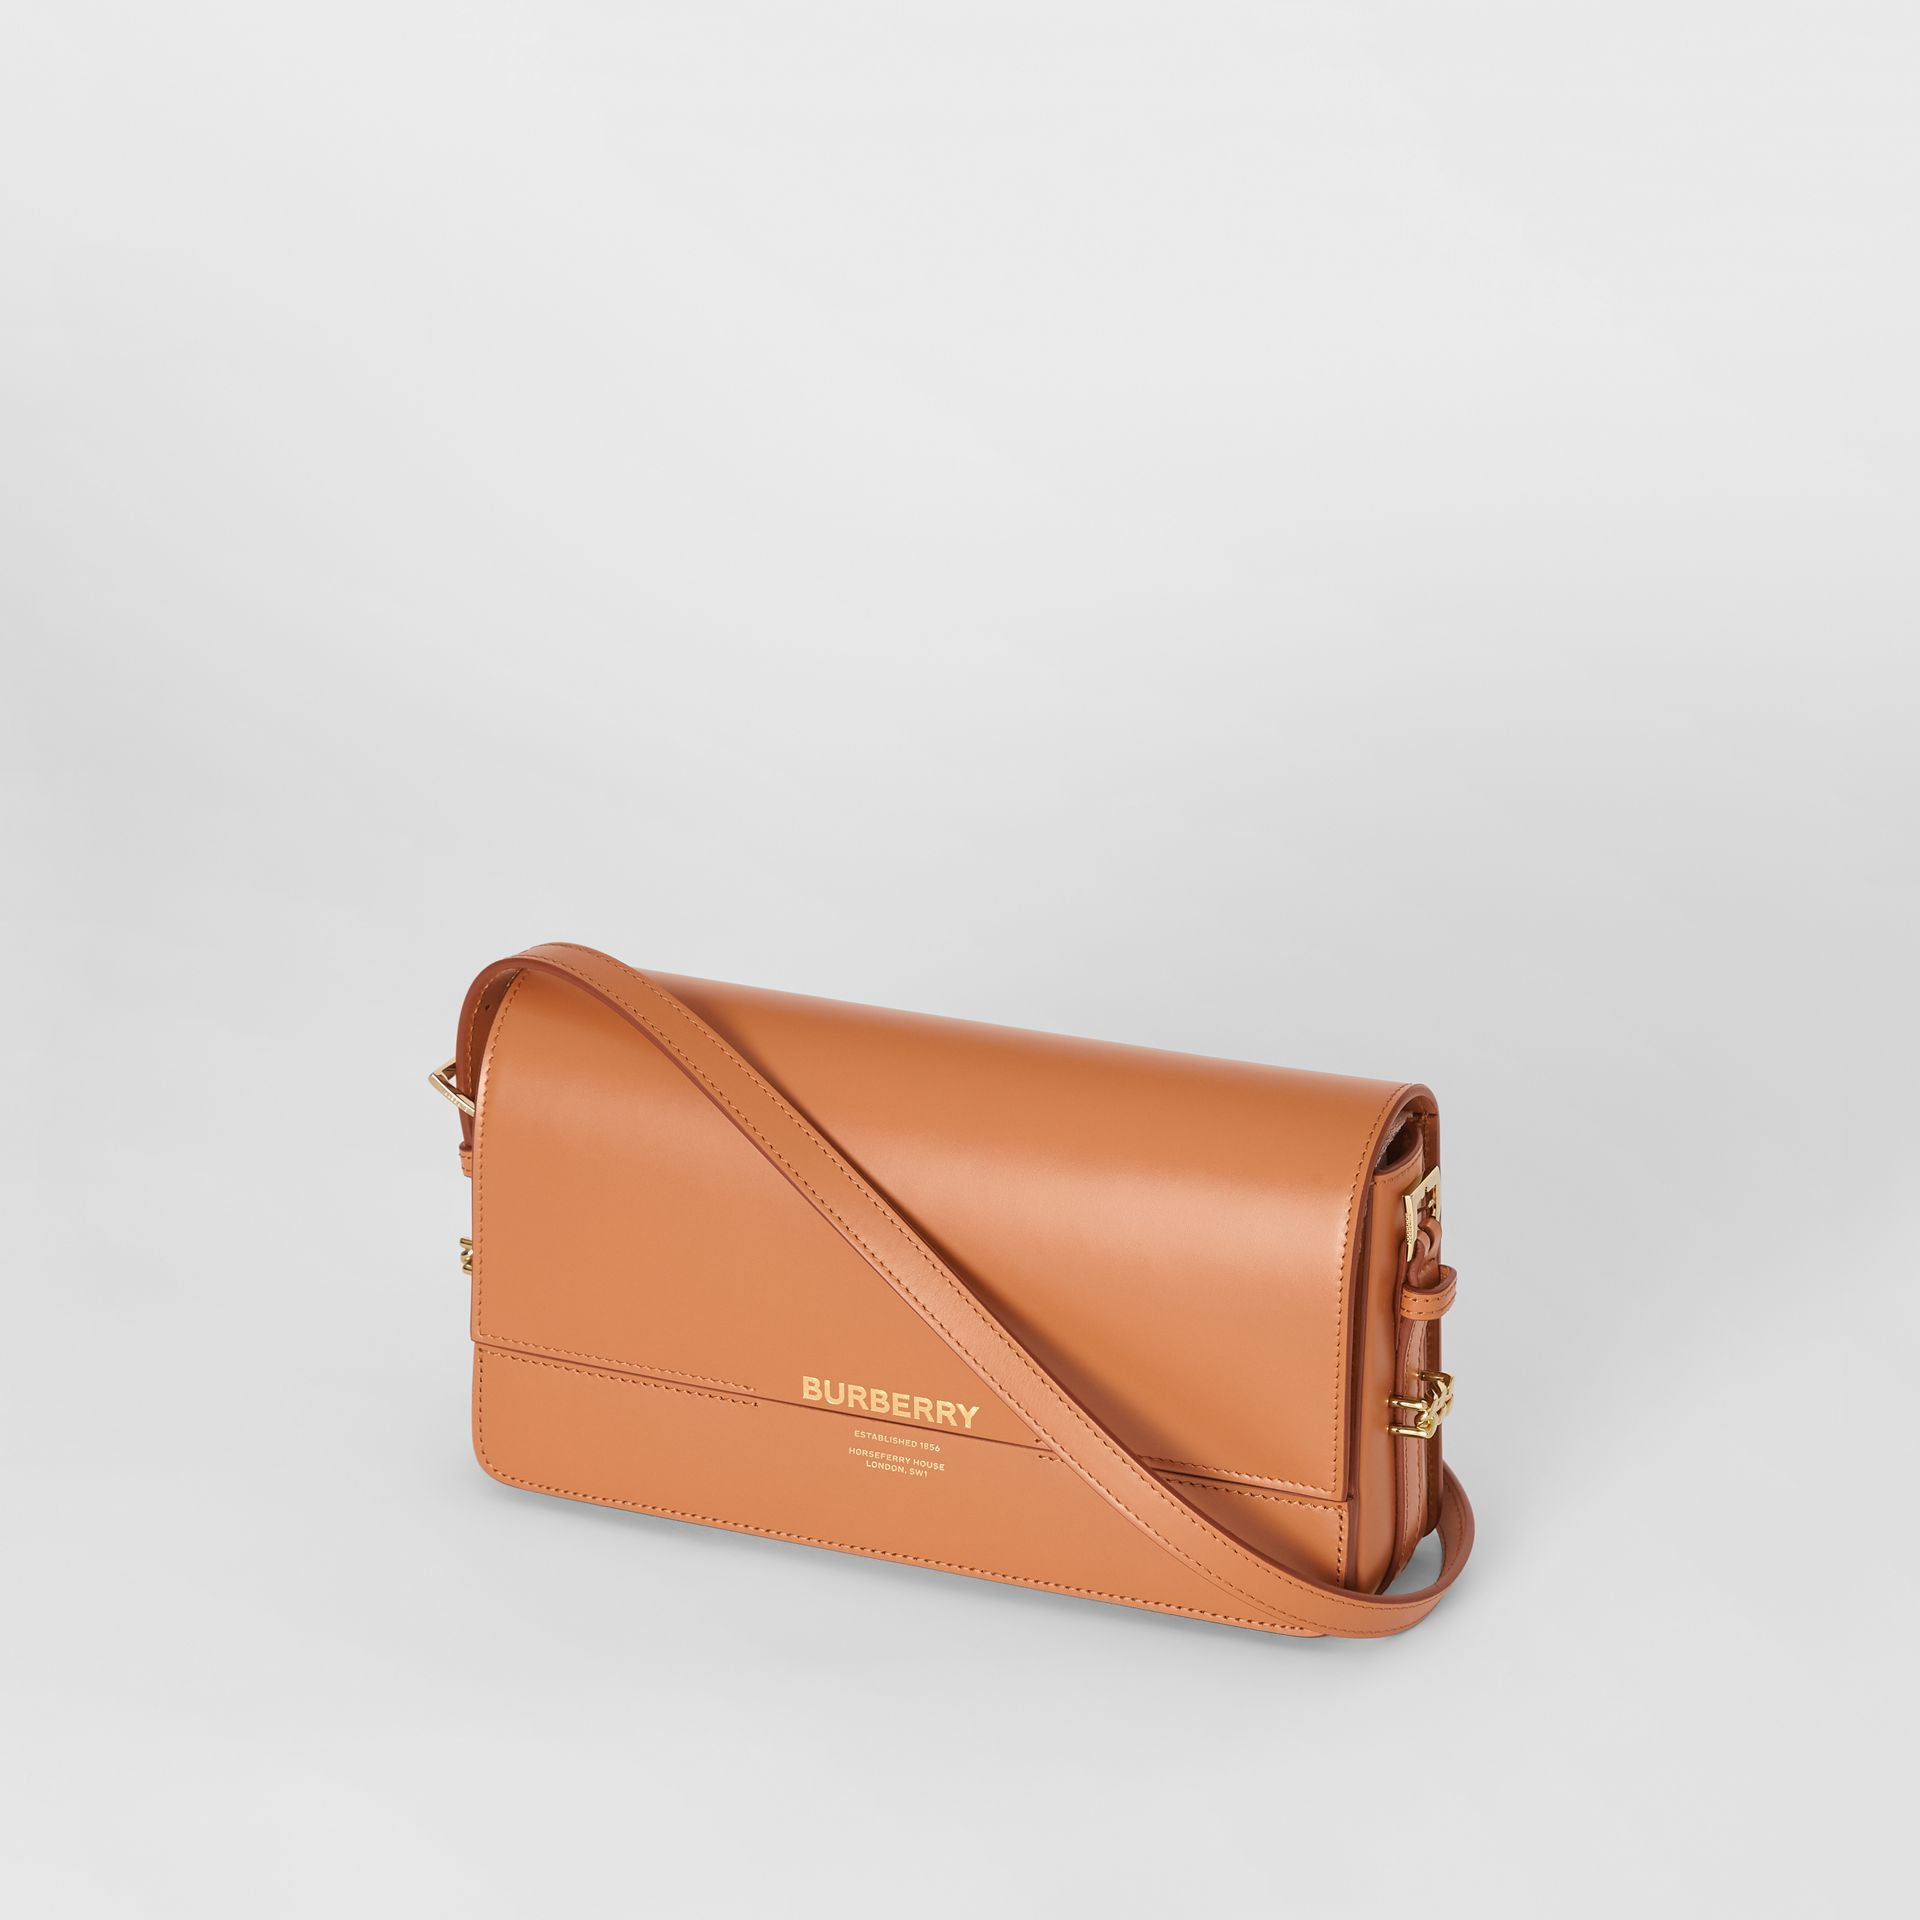 Mini sac Grace en cuir (Noix De Muscade) - Femme | Burberry Canada - photo de la galerie 3